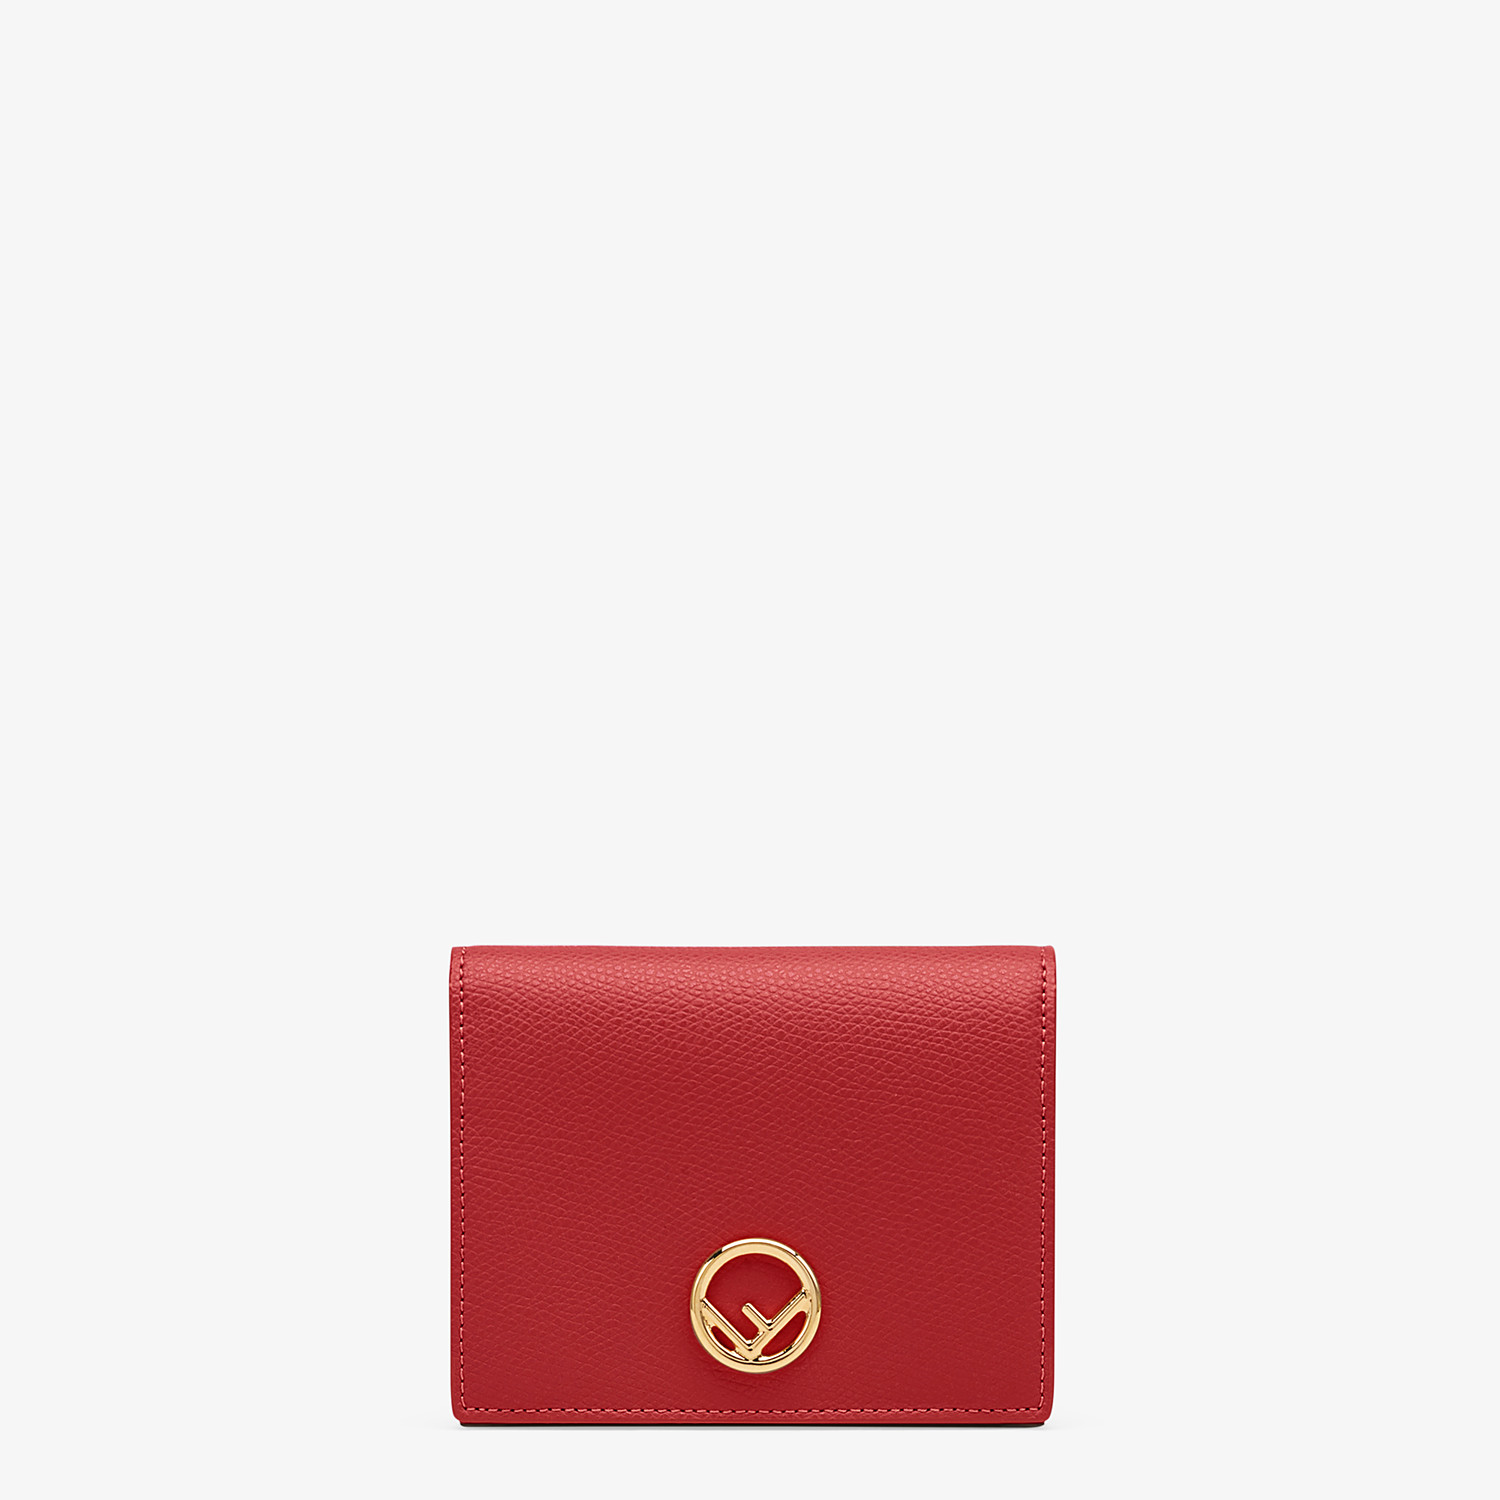 FENDI BIFOLD - Red leather compact wallet - view 1 detail